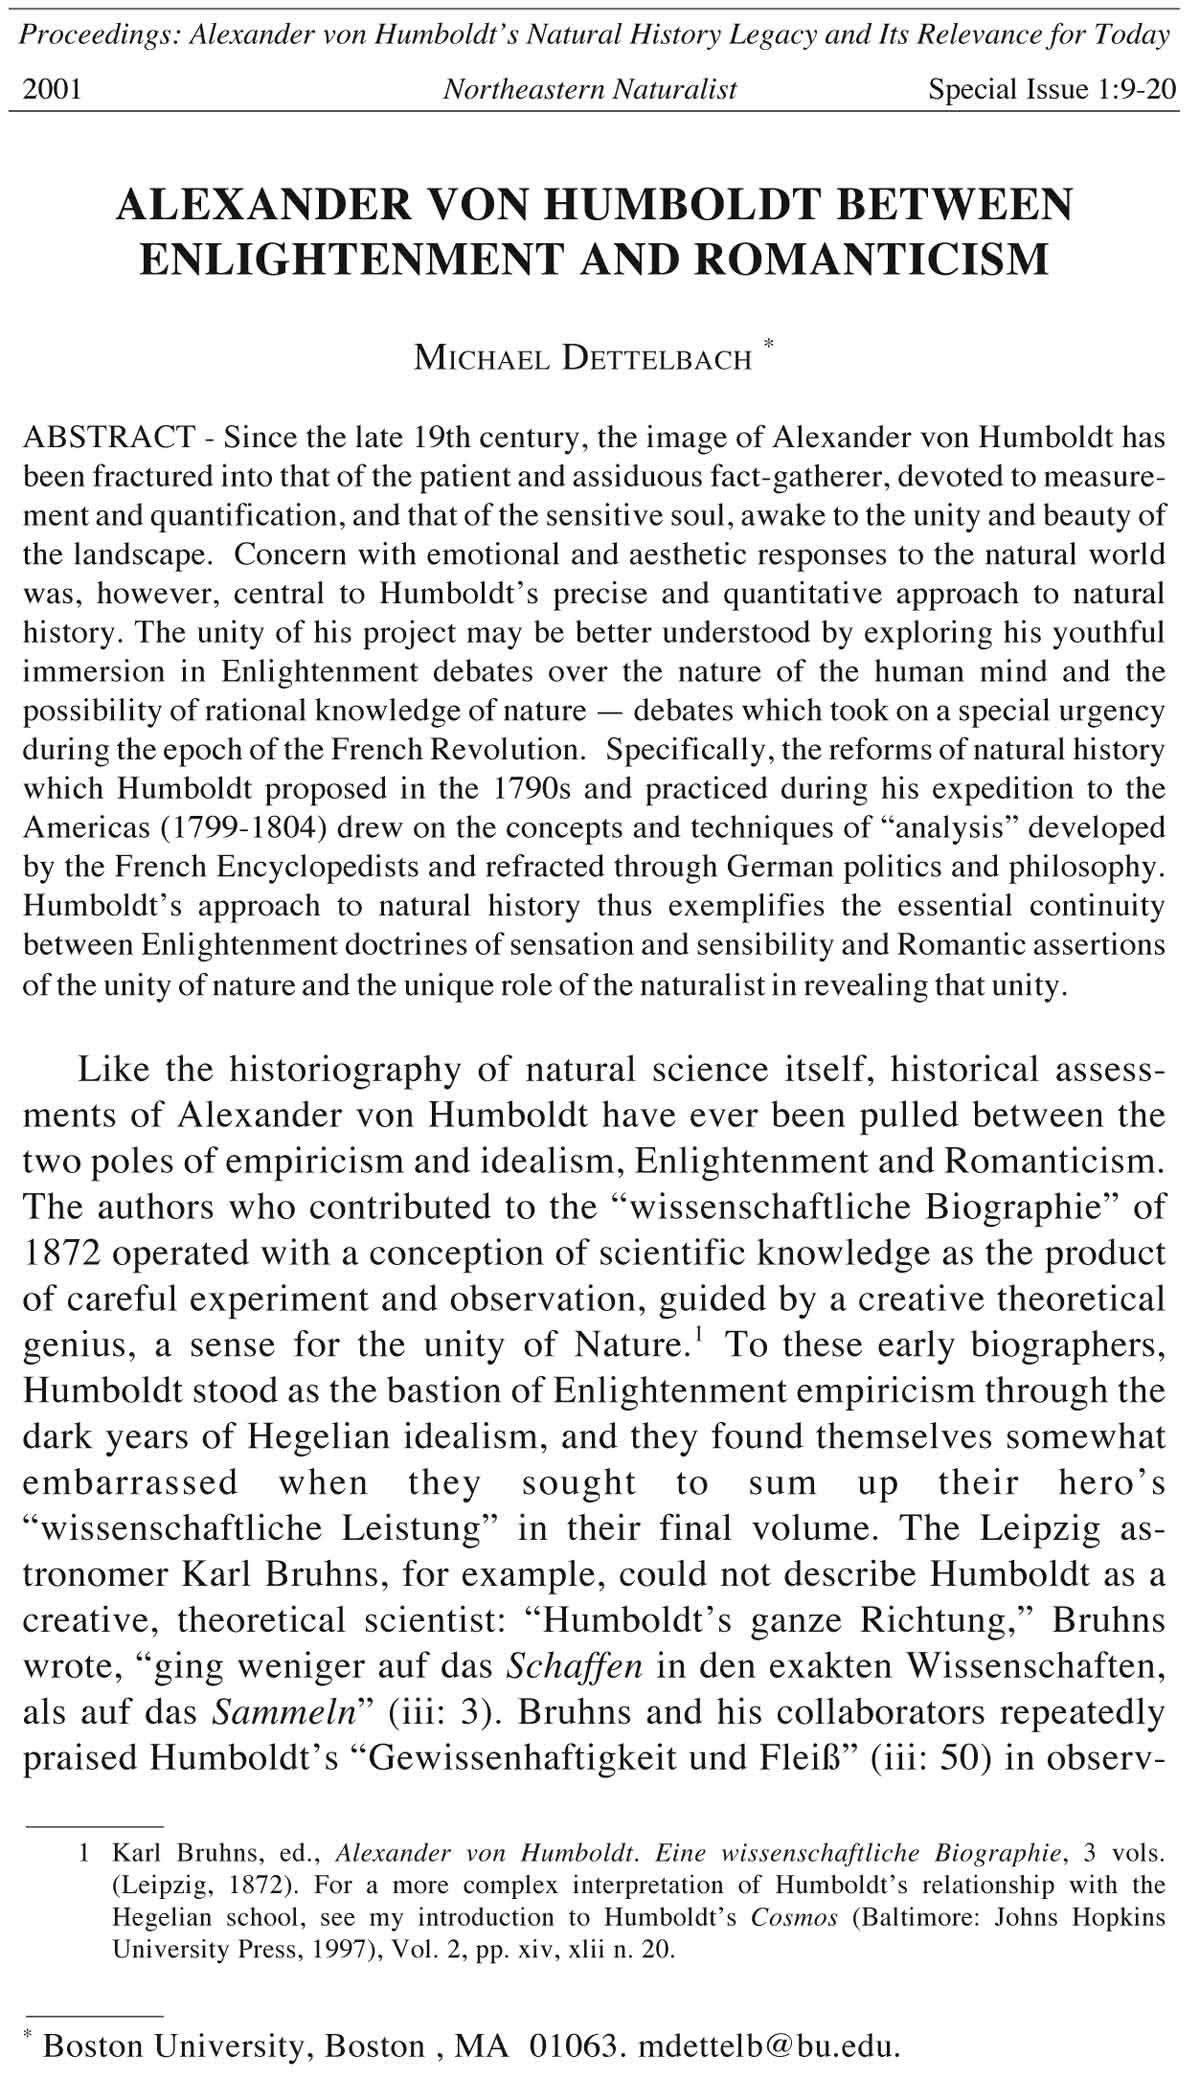 Northeastern Naturalist, Volume 8, Special Issue 1 (2001): 9–20